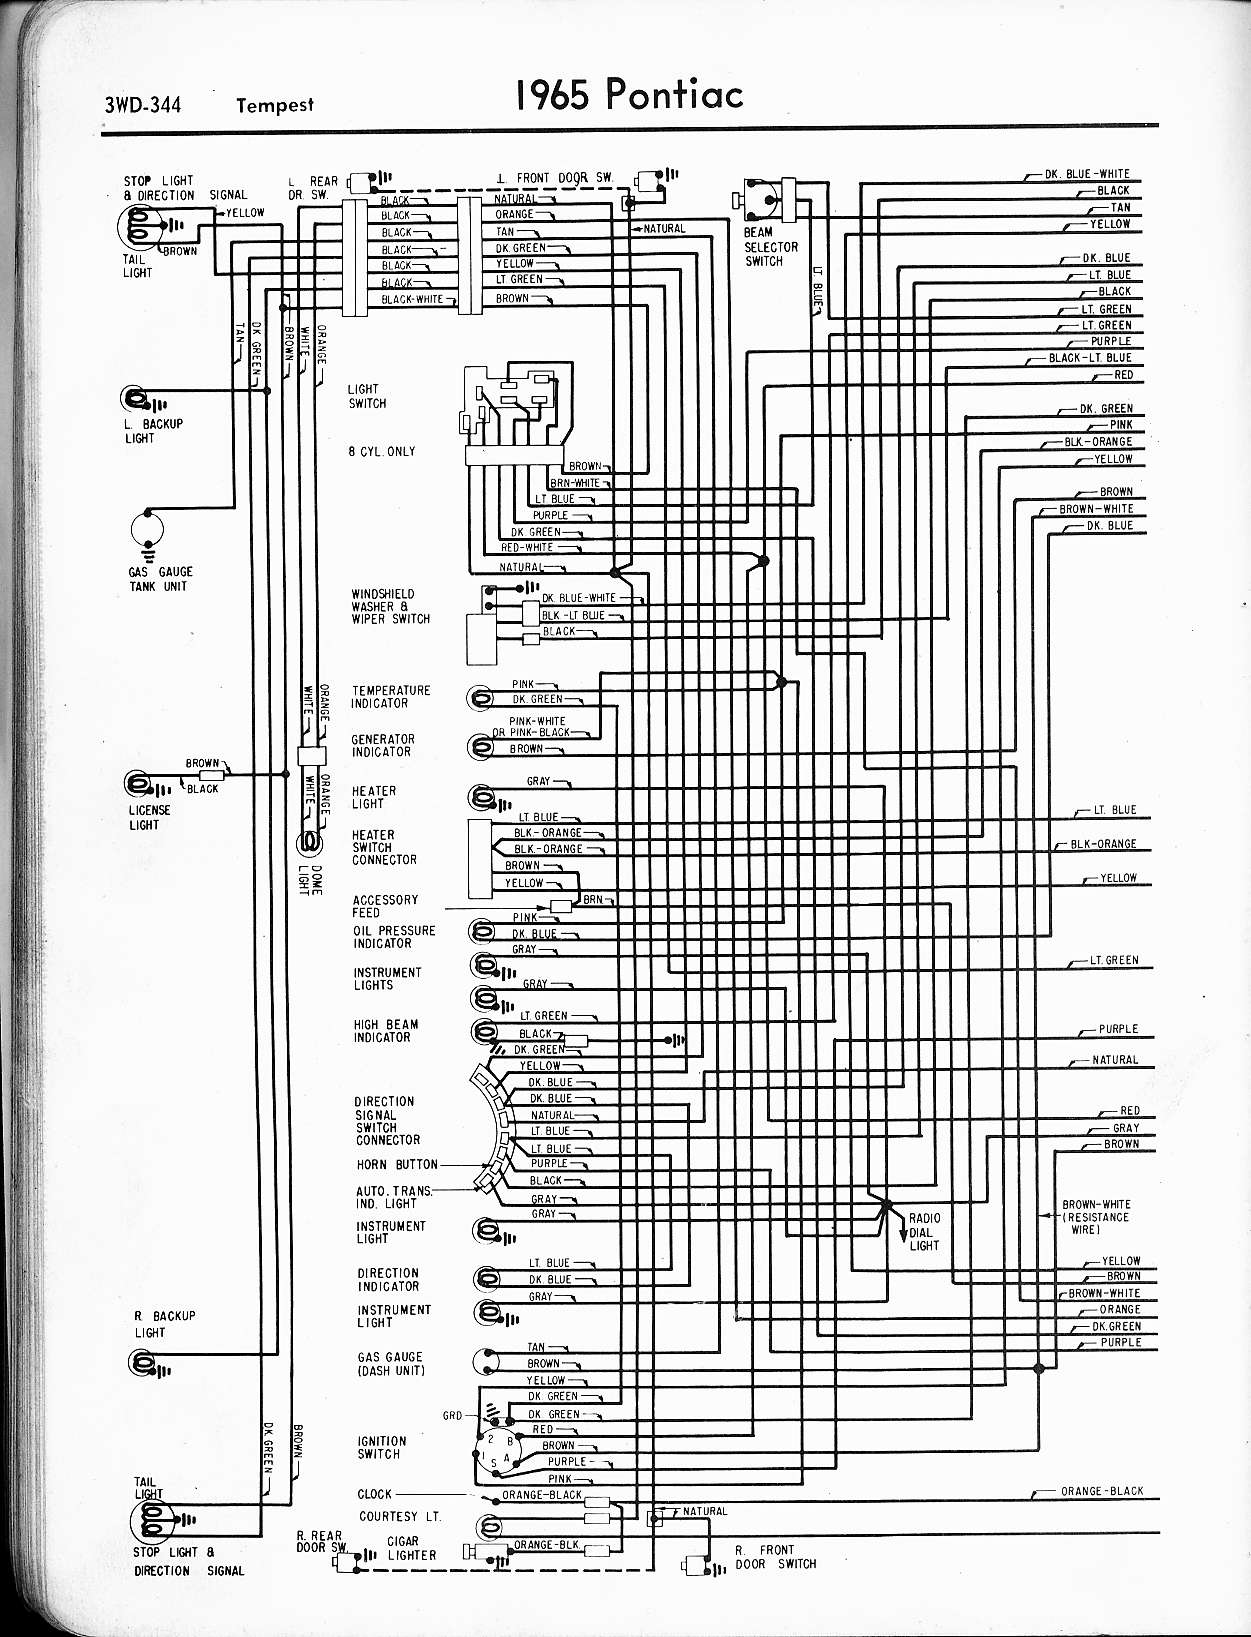 1965 pontiac wiring diagram online schematic diagram u2022 rh holyoak co